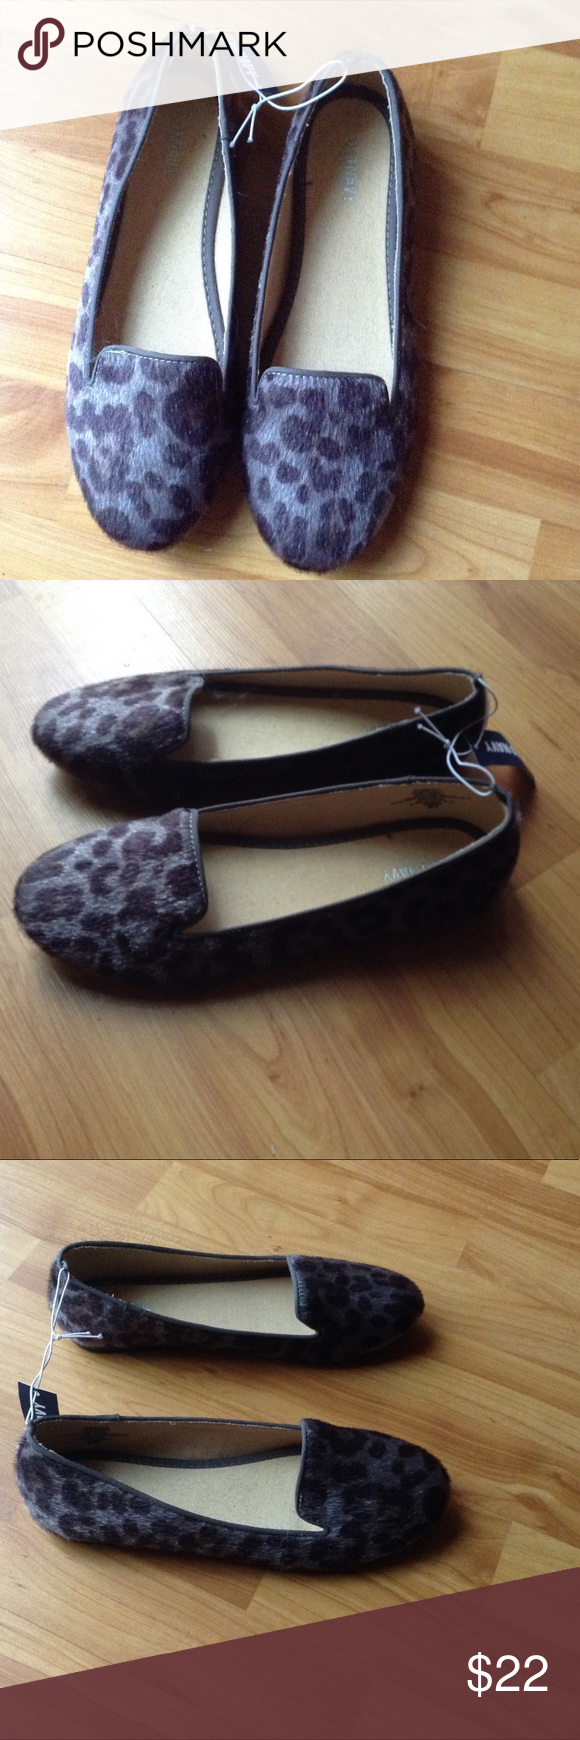 Brand New Animal Print Flats Brand New Animal Print Flats; Faux 'Hair' Material; These flats will make any basic outfit pop! Old Navy Shoes Flats & Loafers